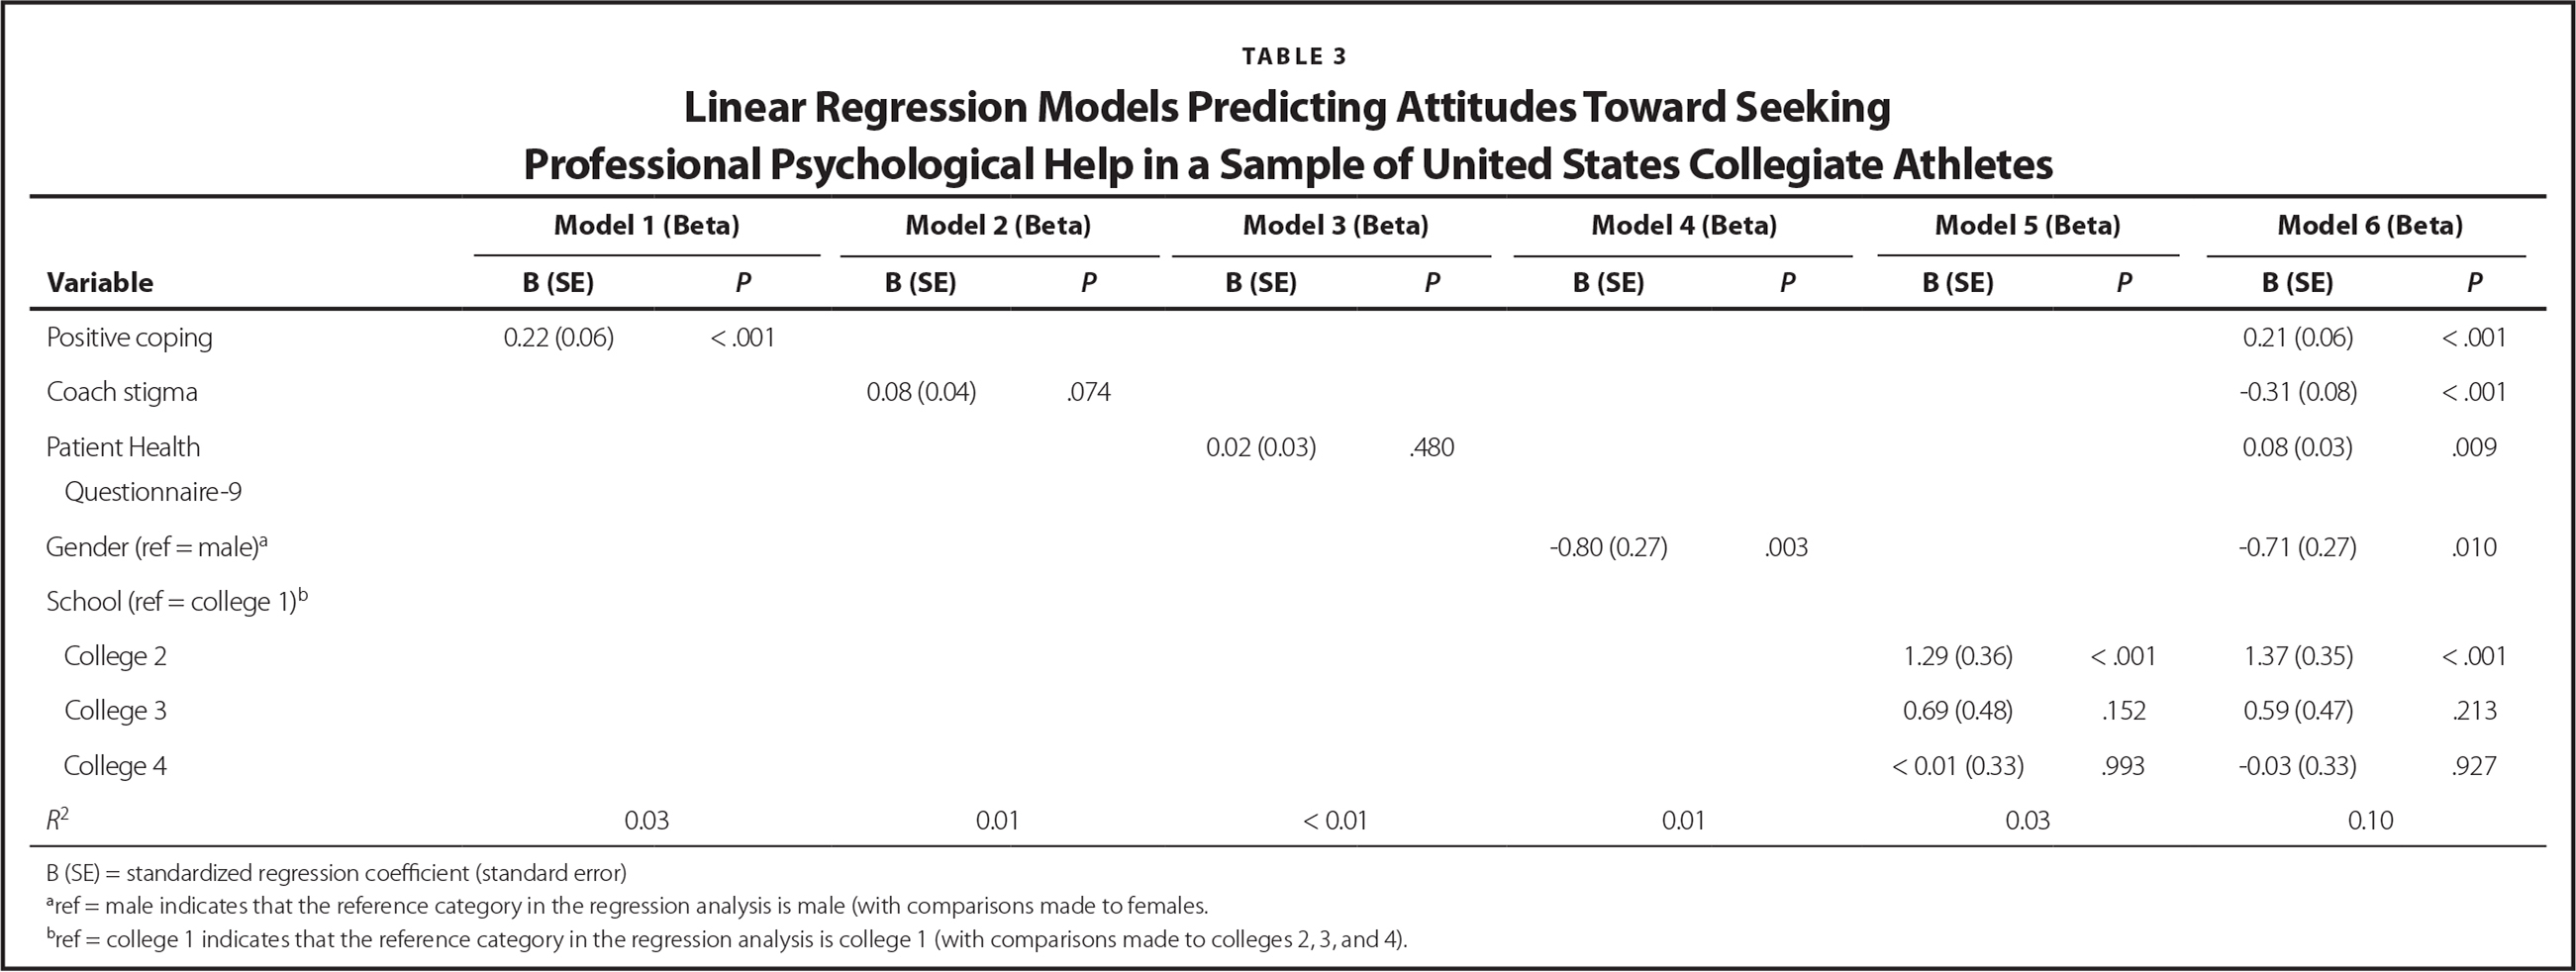 Linear Regression Models Predicting Attitudes Toward Seeking Professional Psychological Help in a Sample of United States Collegiate Athletes